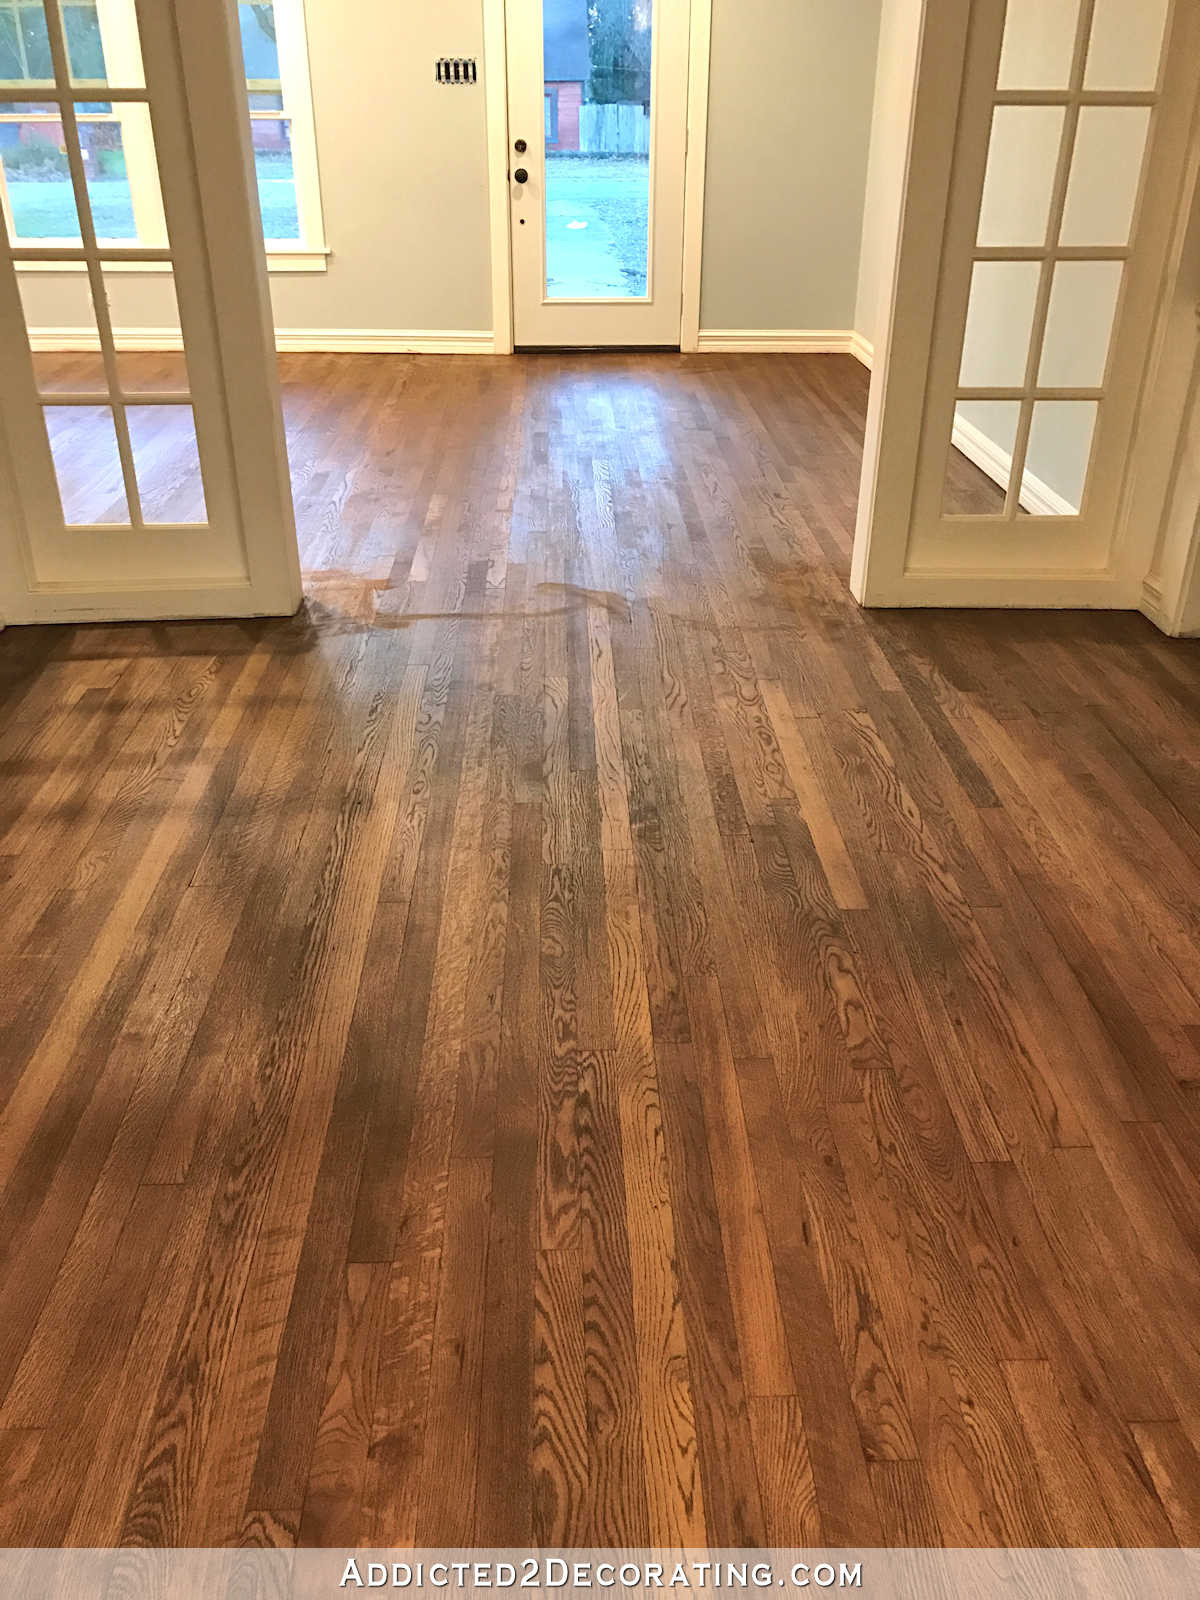 Can I Refinish Hardwood Floors Myself Of Adventures In Staining My Red Oak Hardwood Floors Products Process Intended for Staining Red Oak Hardwood Floors 9 Stain On Entryway and Music Room Floors